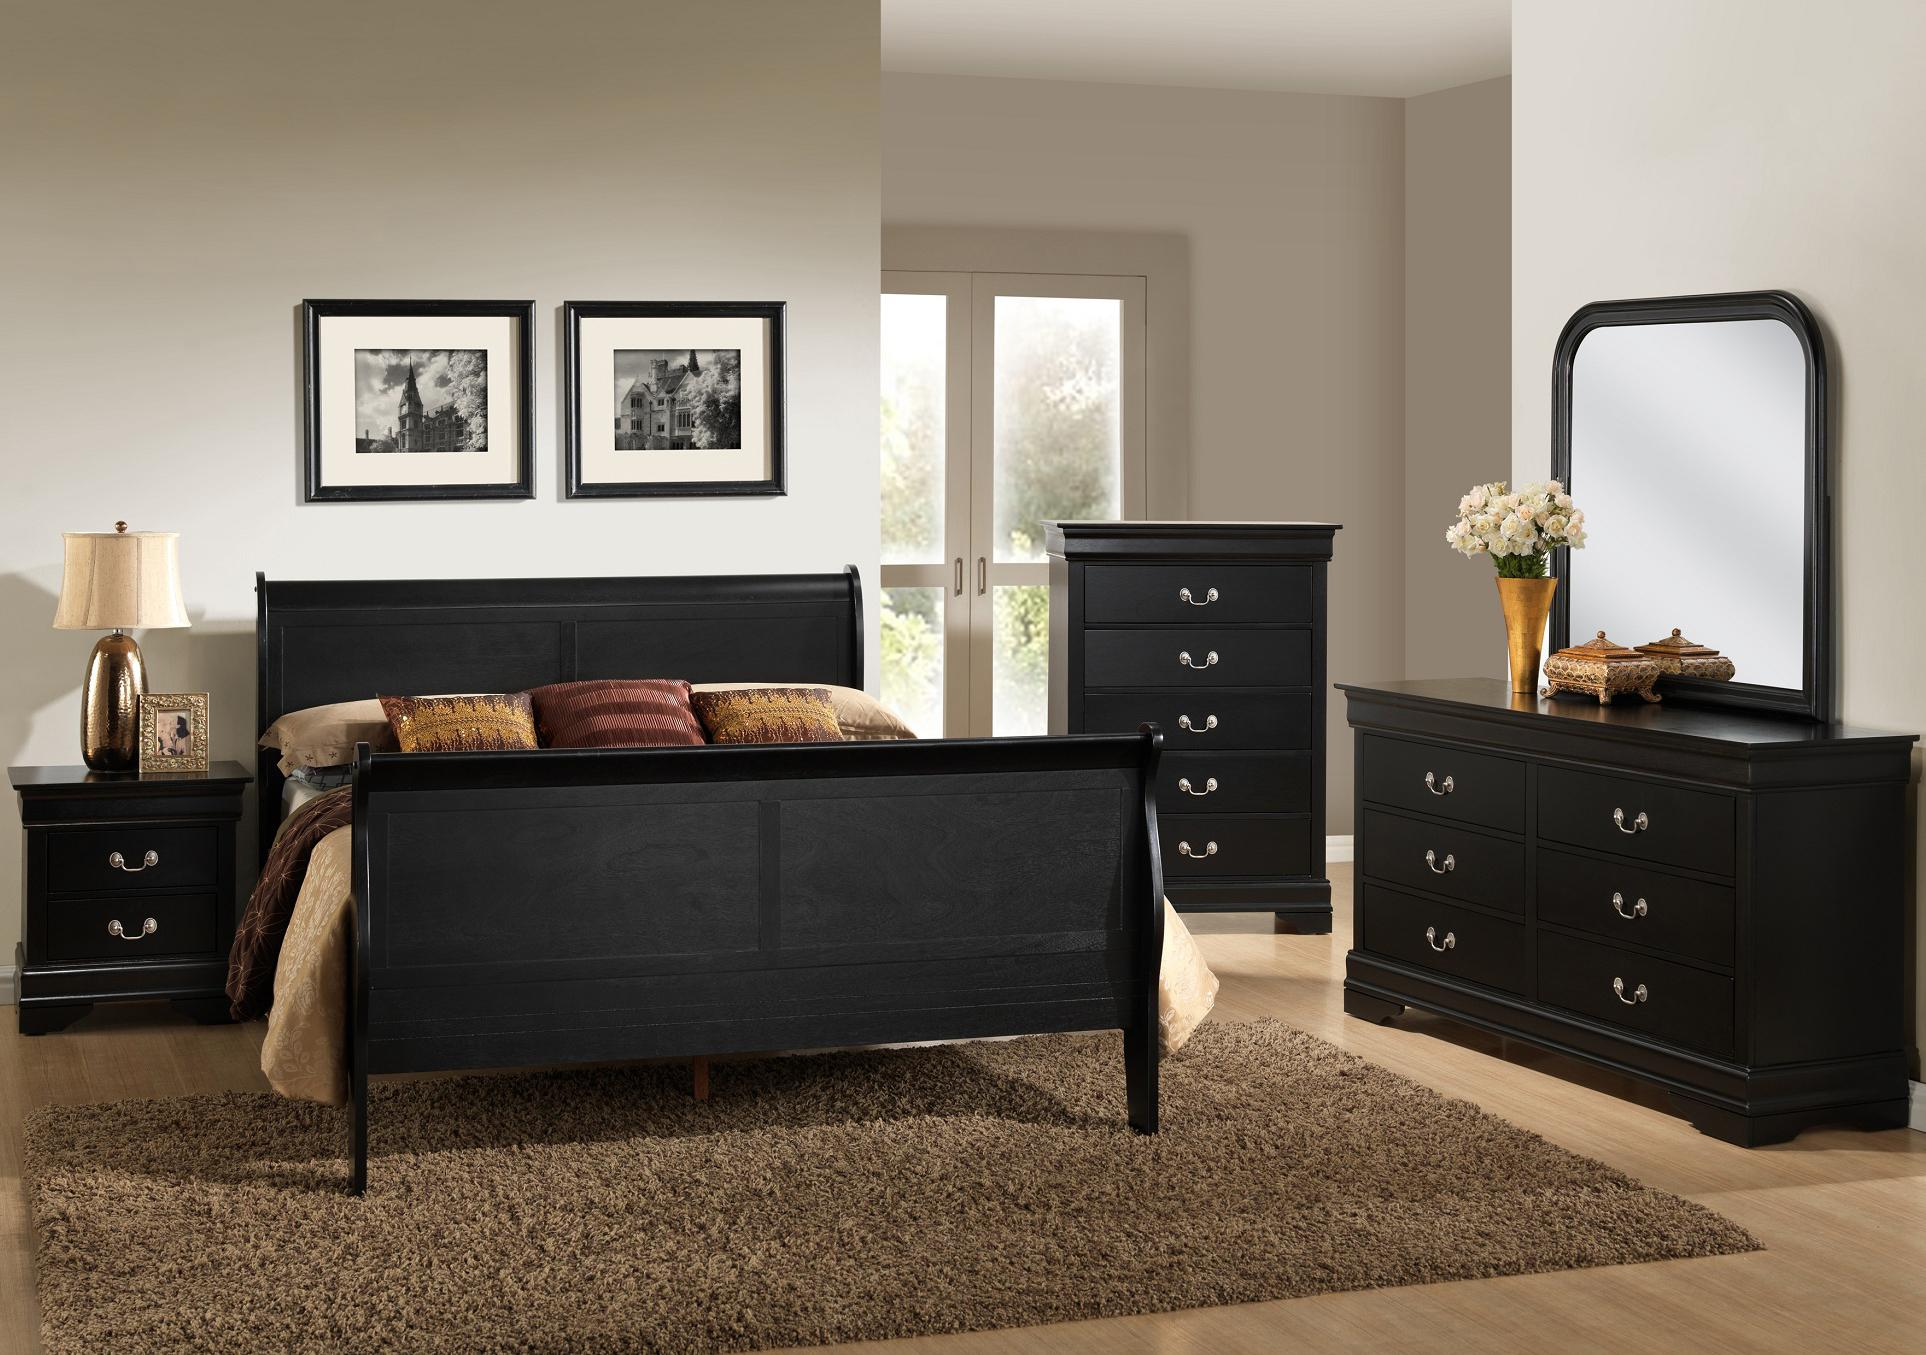 Louis Phillipe C5934 By Lifestyle Royal Furniture